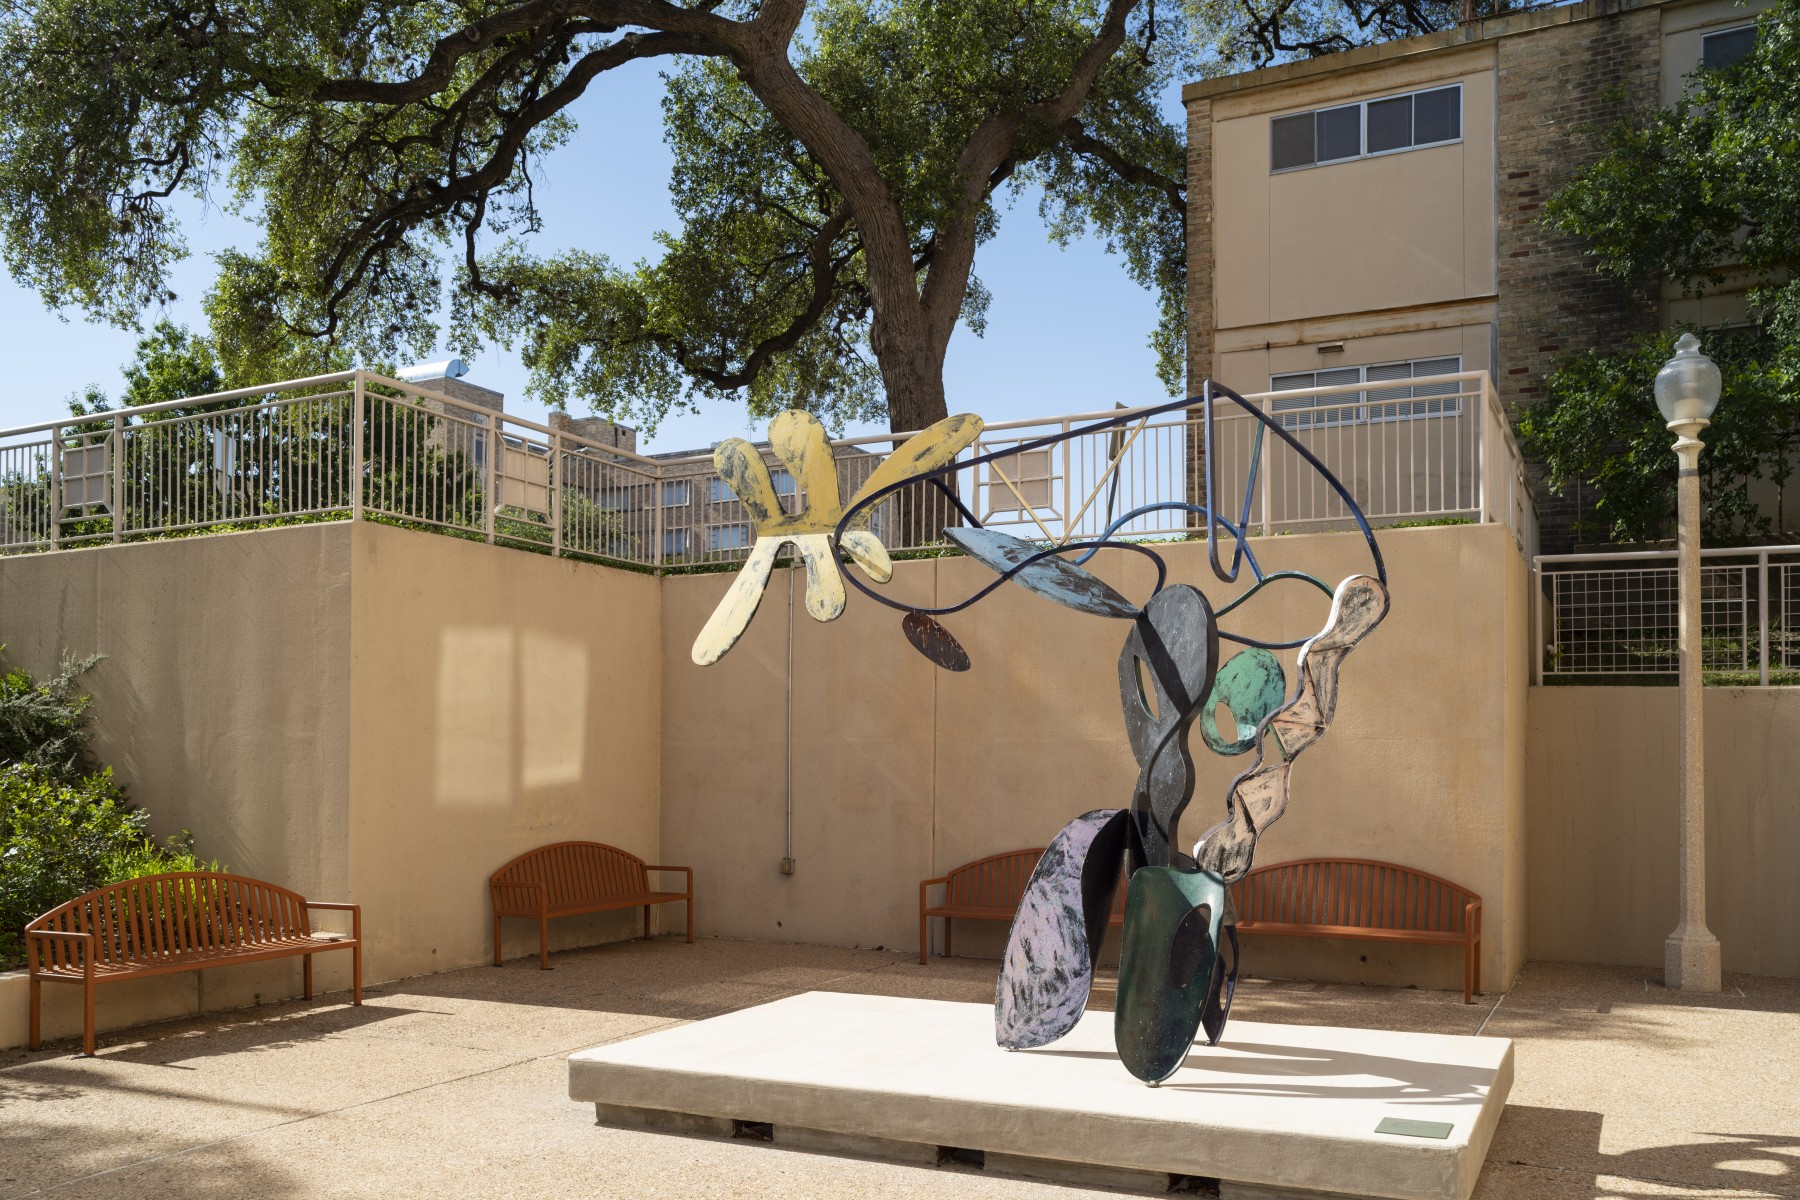 A large bendy sculpture with parts colored in different colors in a courtyard with benches surrounding it